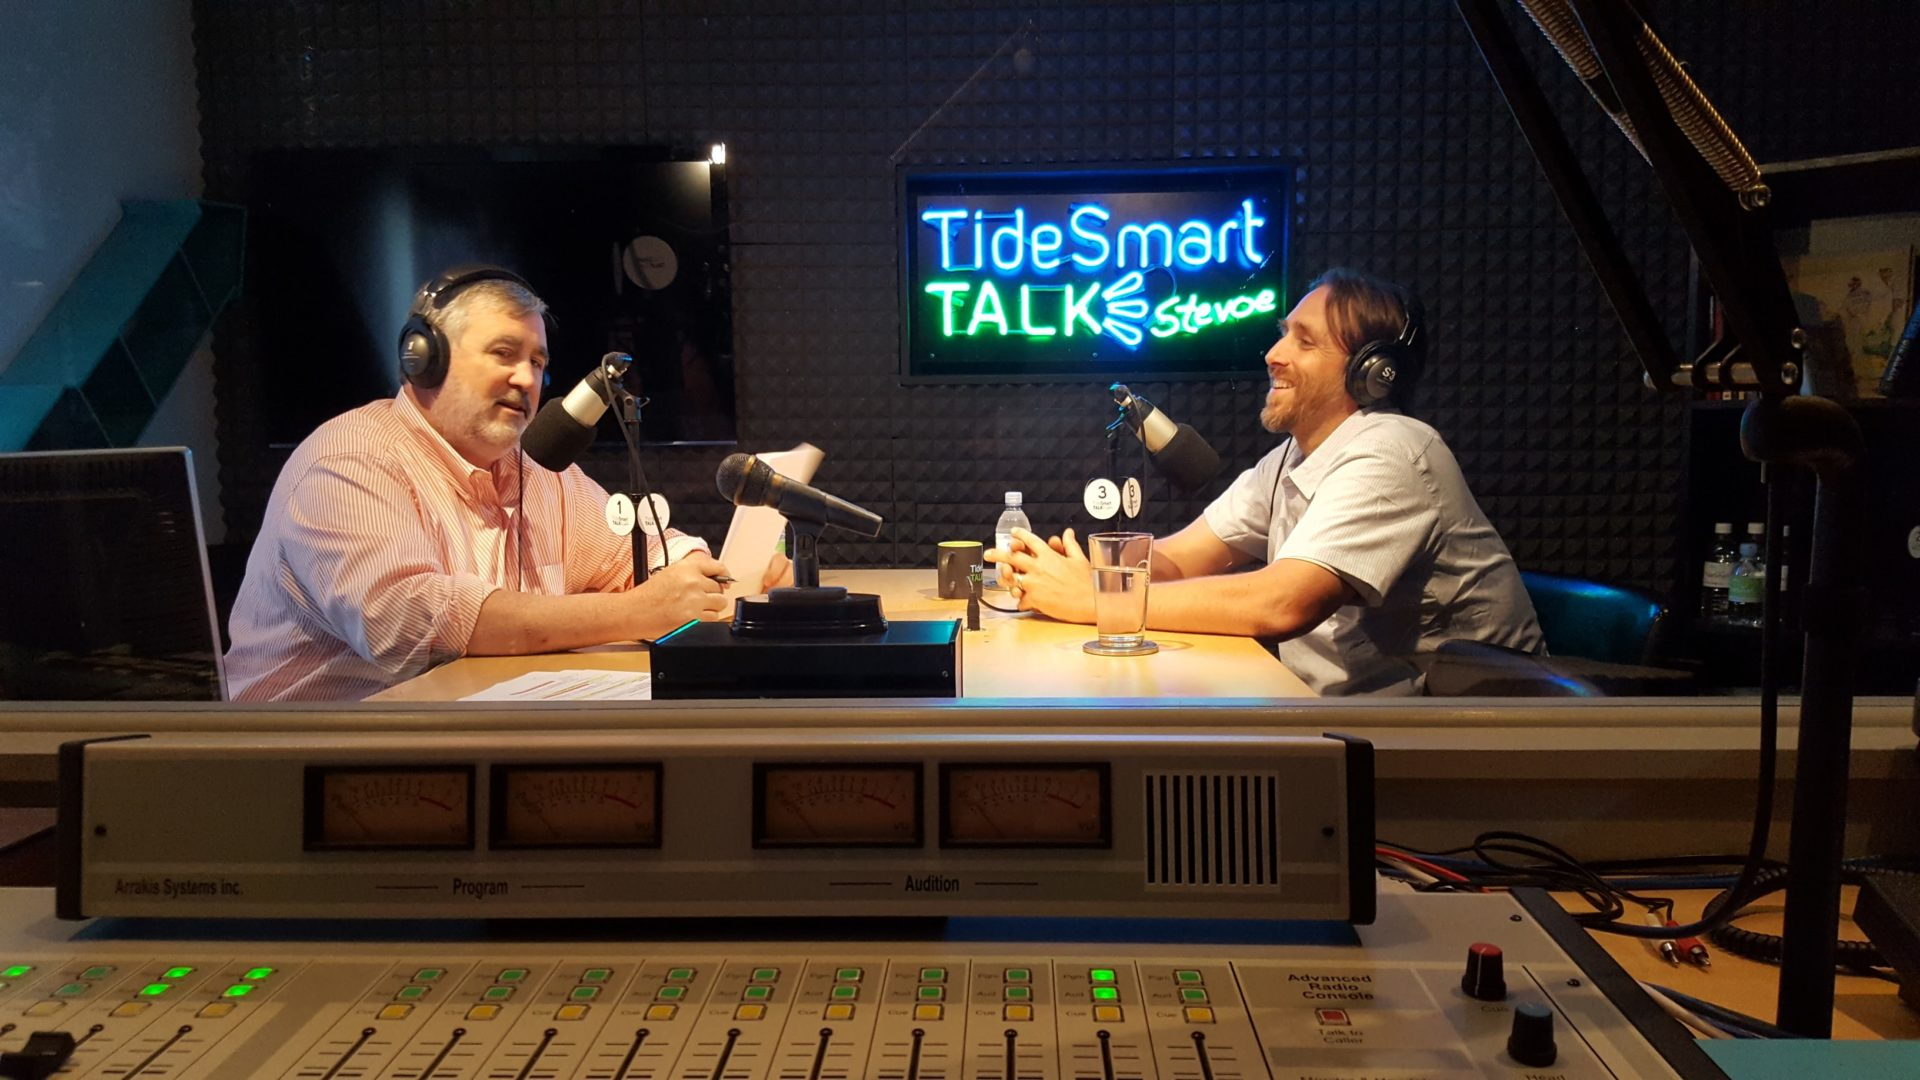 Host of TideSmart Talk with Stevoe, Steve Woods, welcomed Owner of Insource Renewables, Vaughn Woodruff (at right).